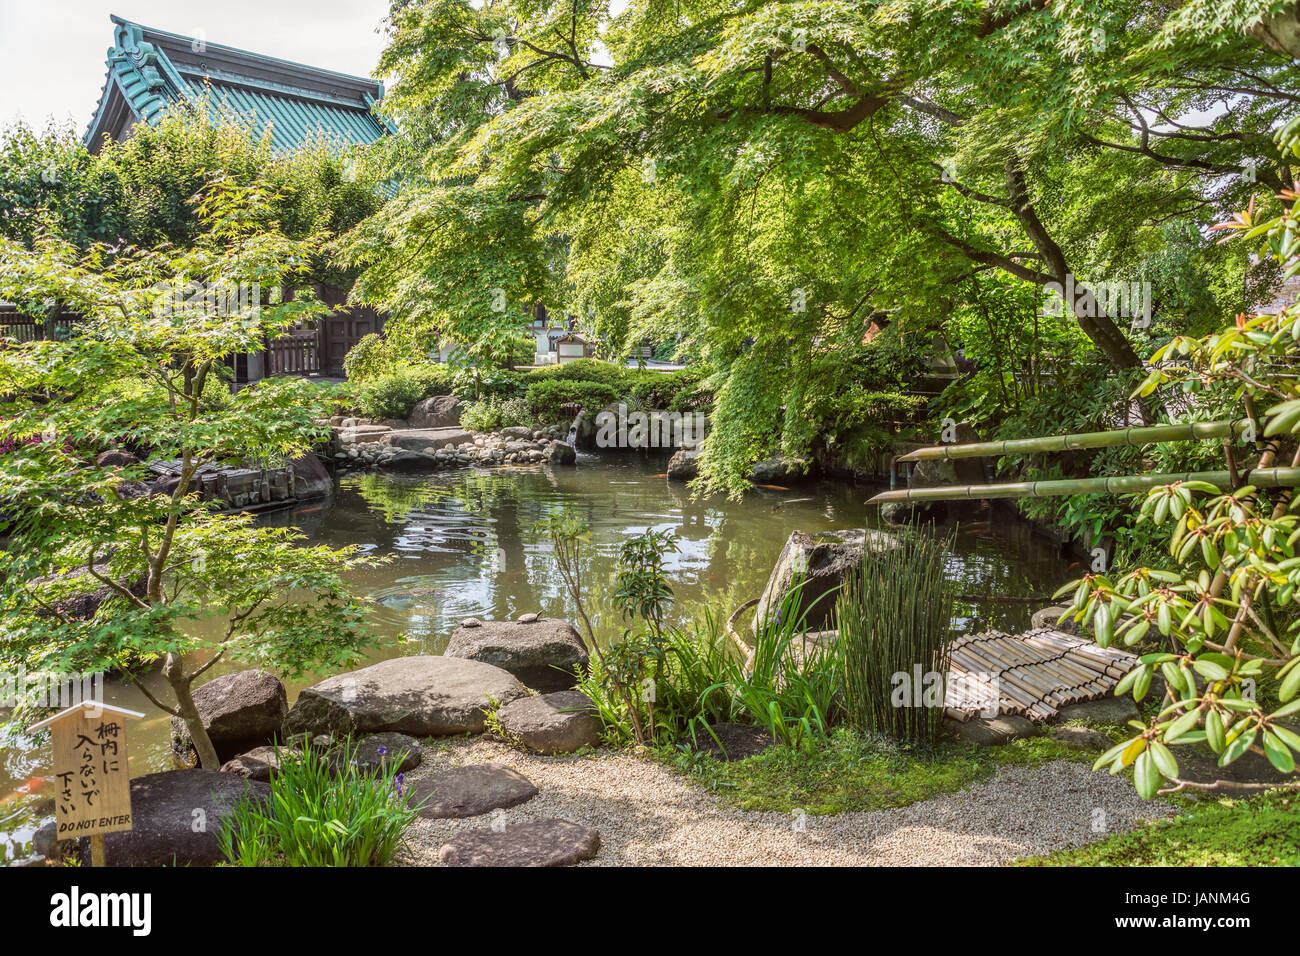 Garden of the Hase-dera temple, commonly called the Hase-kannon, one of the Buddhist temples in Kamakura, Kanagawa - Stock Image